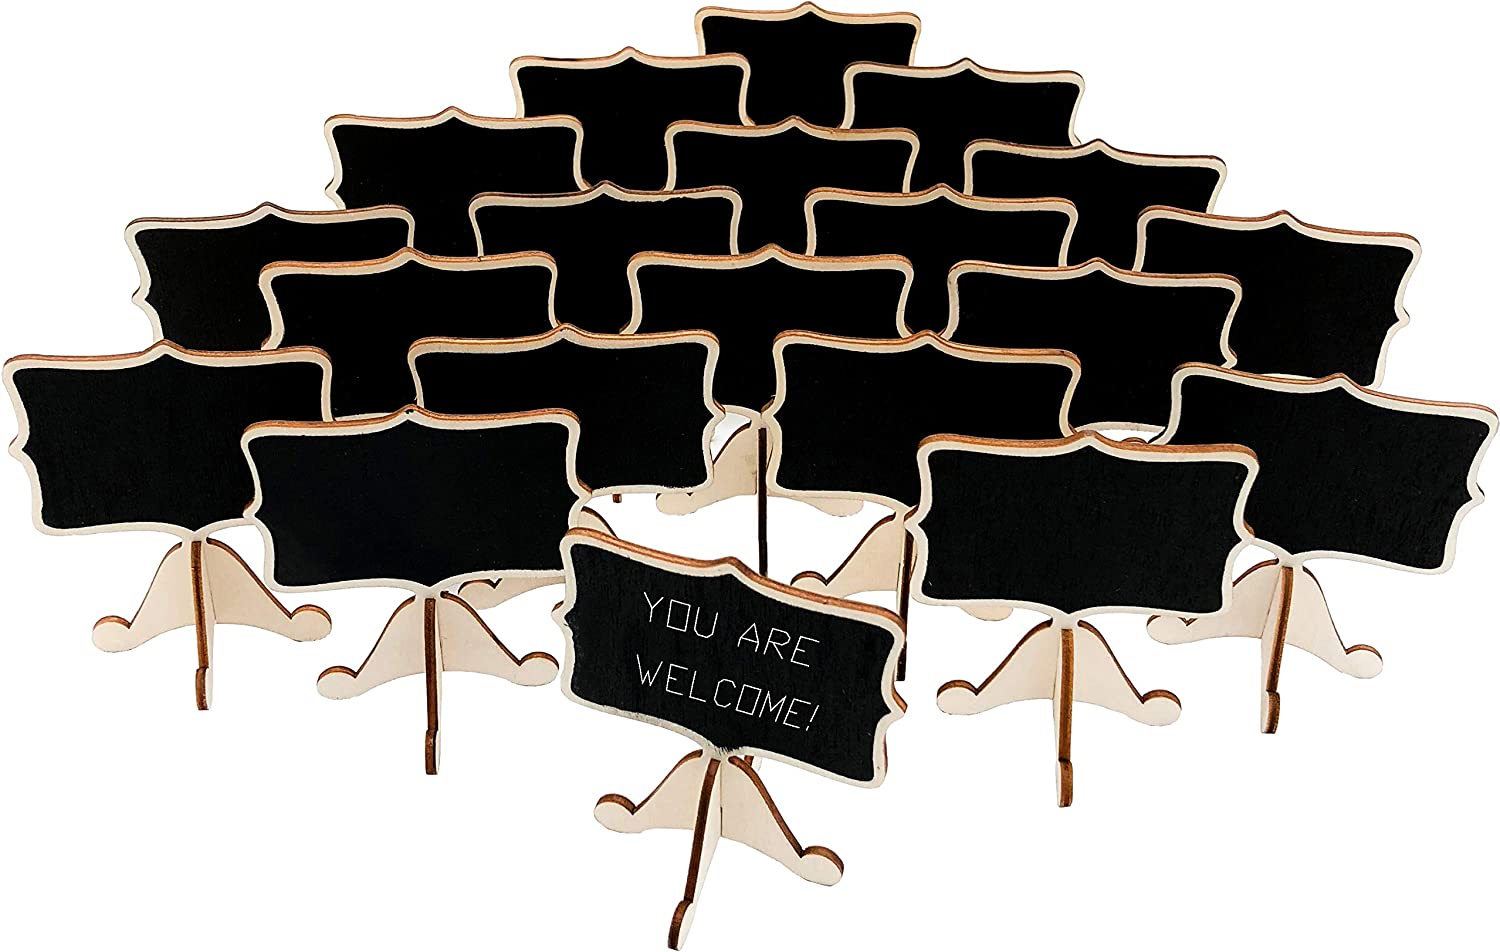 20 Pcs Wood Mini excellence Chalkboard Signs Easels with Place Support Car 40% OFF Cheap Sale